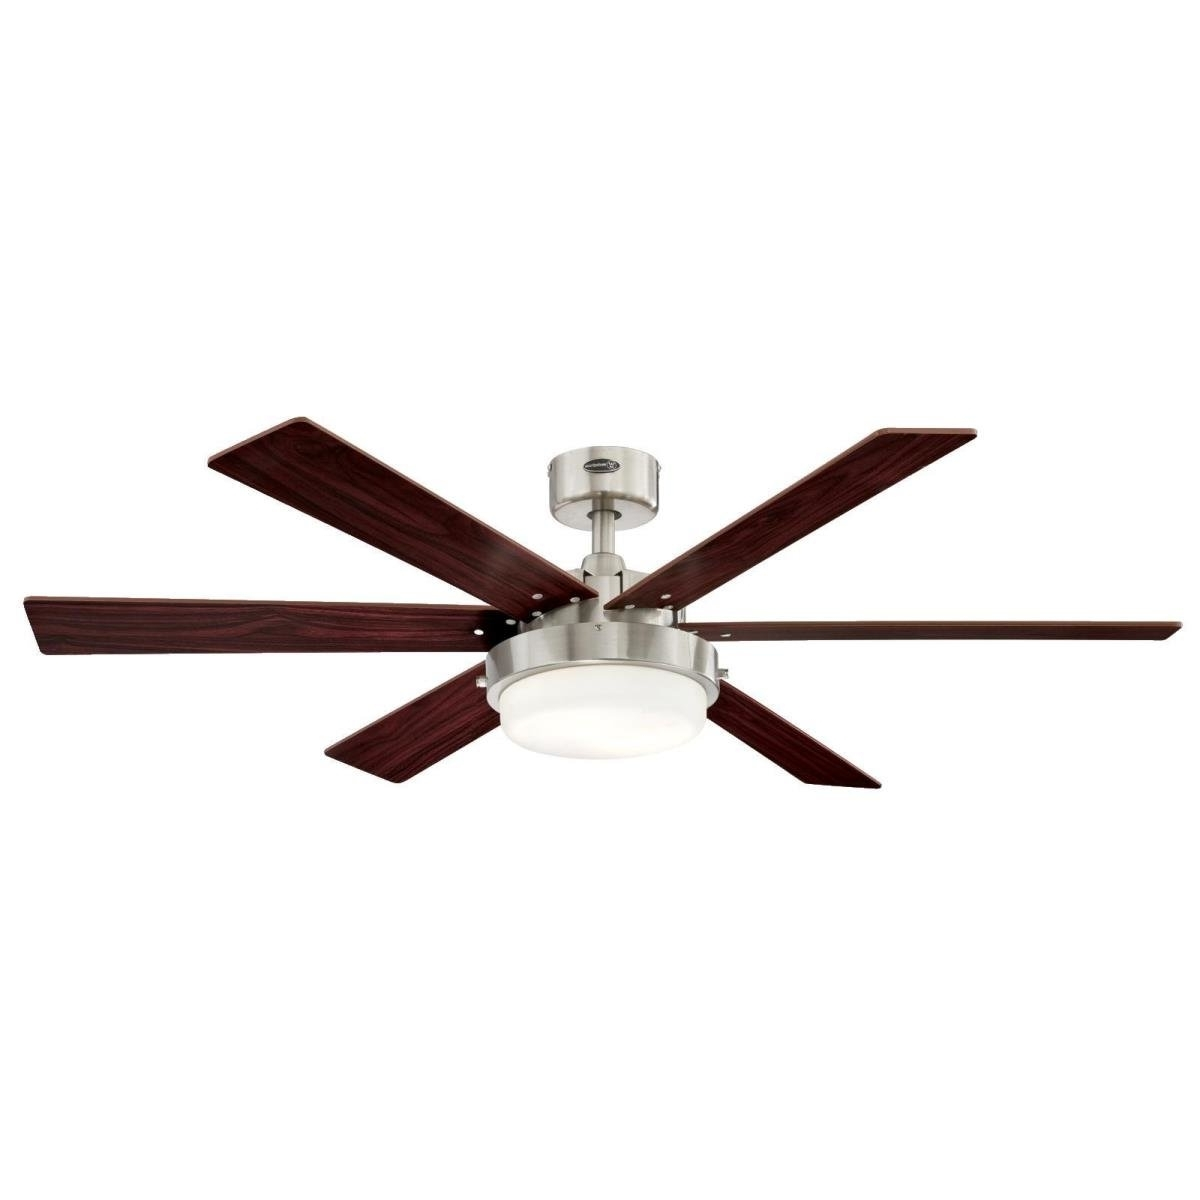 Joss & Main Intended For Most Popular Outdoor Ceiling Fans With Removable Blades (Gallery 17 of 20)